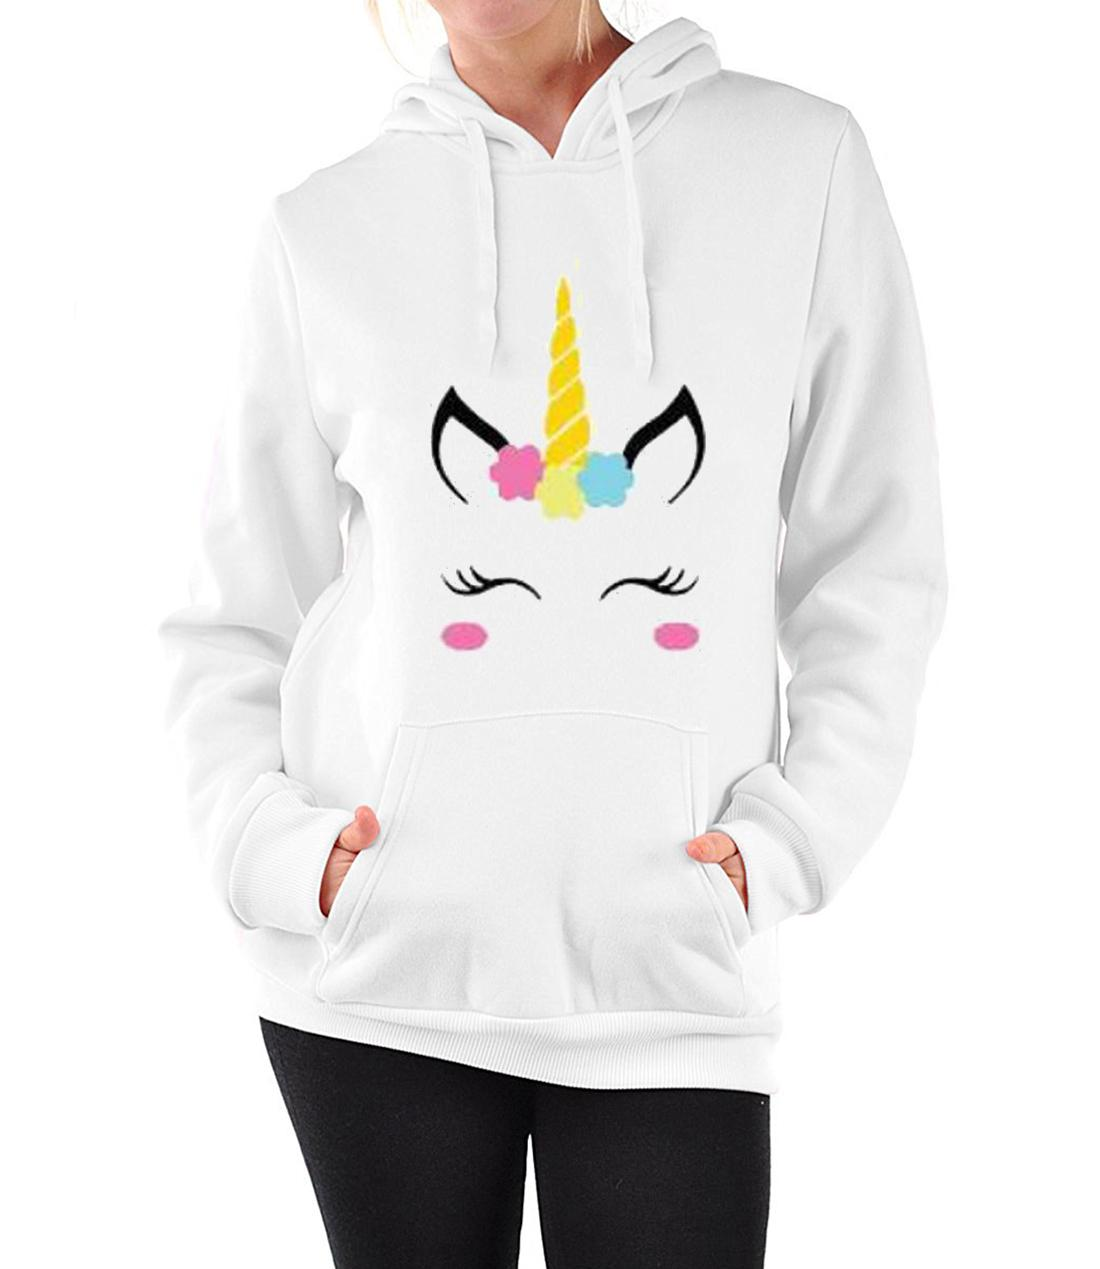 2019 Spirng New Fashion Hoodie Women New Unicorn Pattern Print Hooded Loose Long Sleeve White Sweatshirt Size S-XL